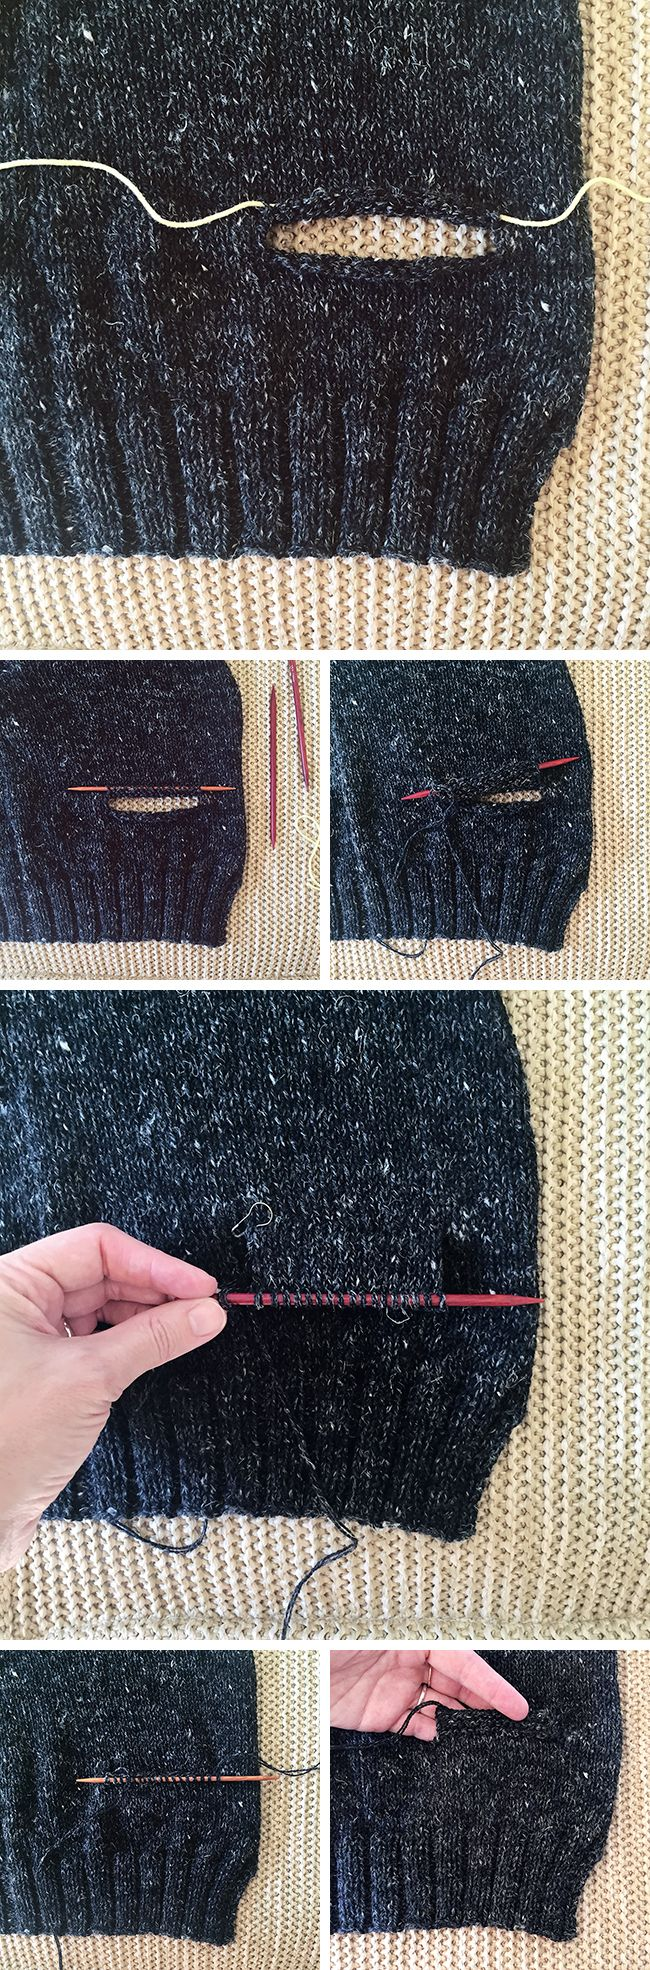 Knitting Sweater Tutorial : How to knit inset pockets top down new on fringe